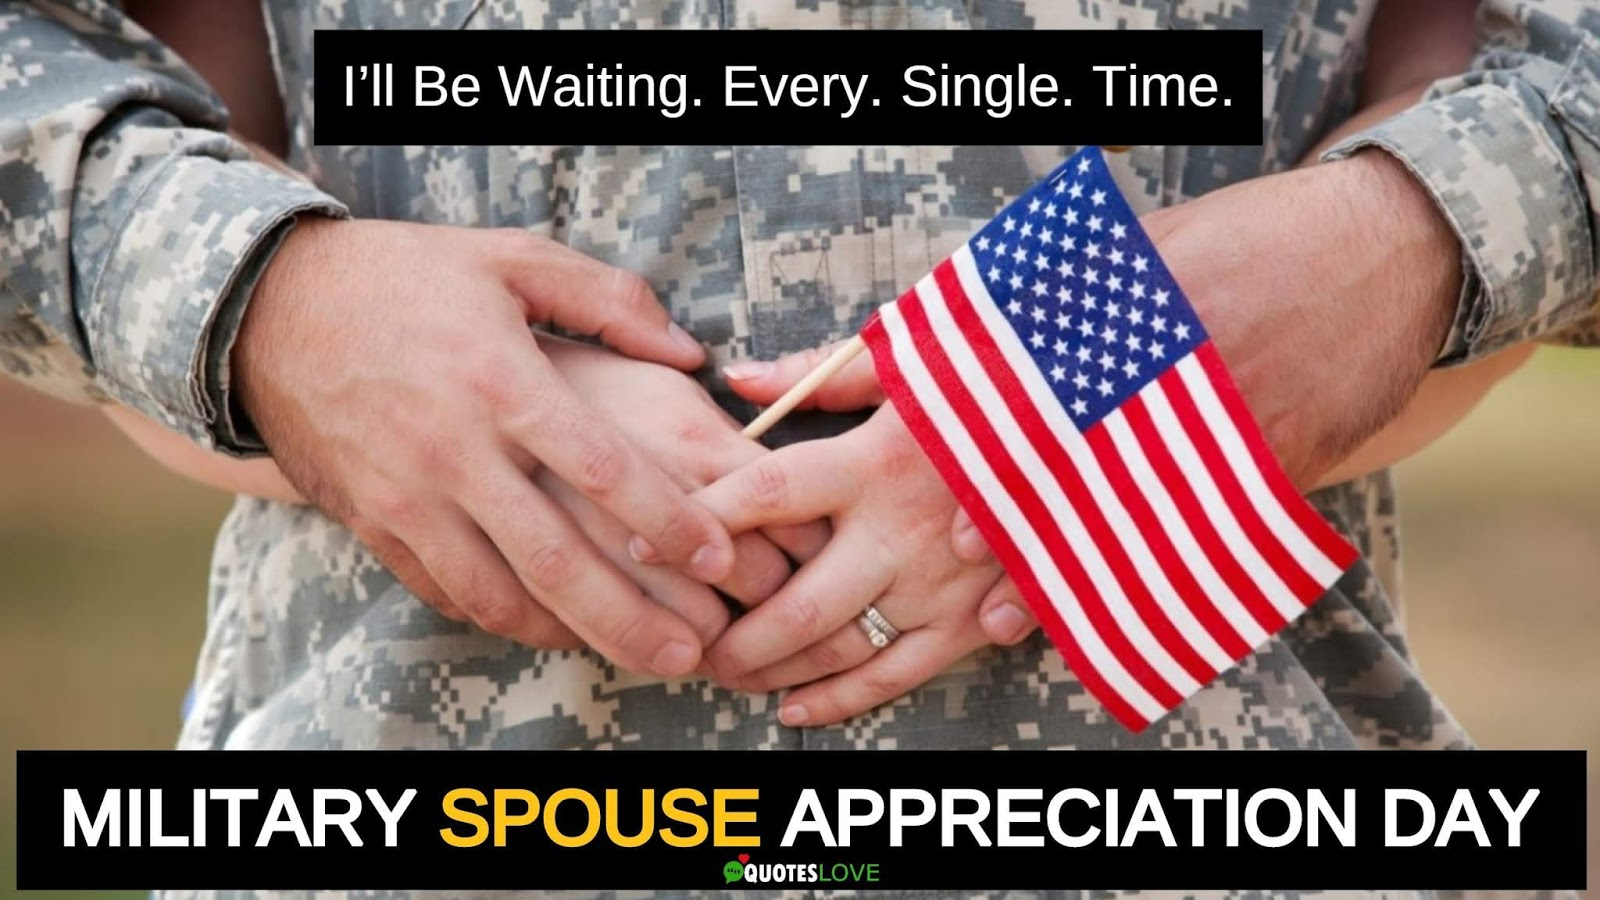 Military Spouse Appreciation Day Quotes, Messages, Greetings, Images, Pictures